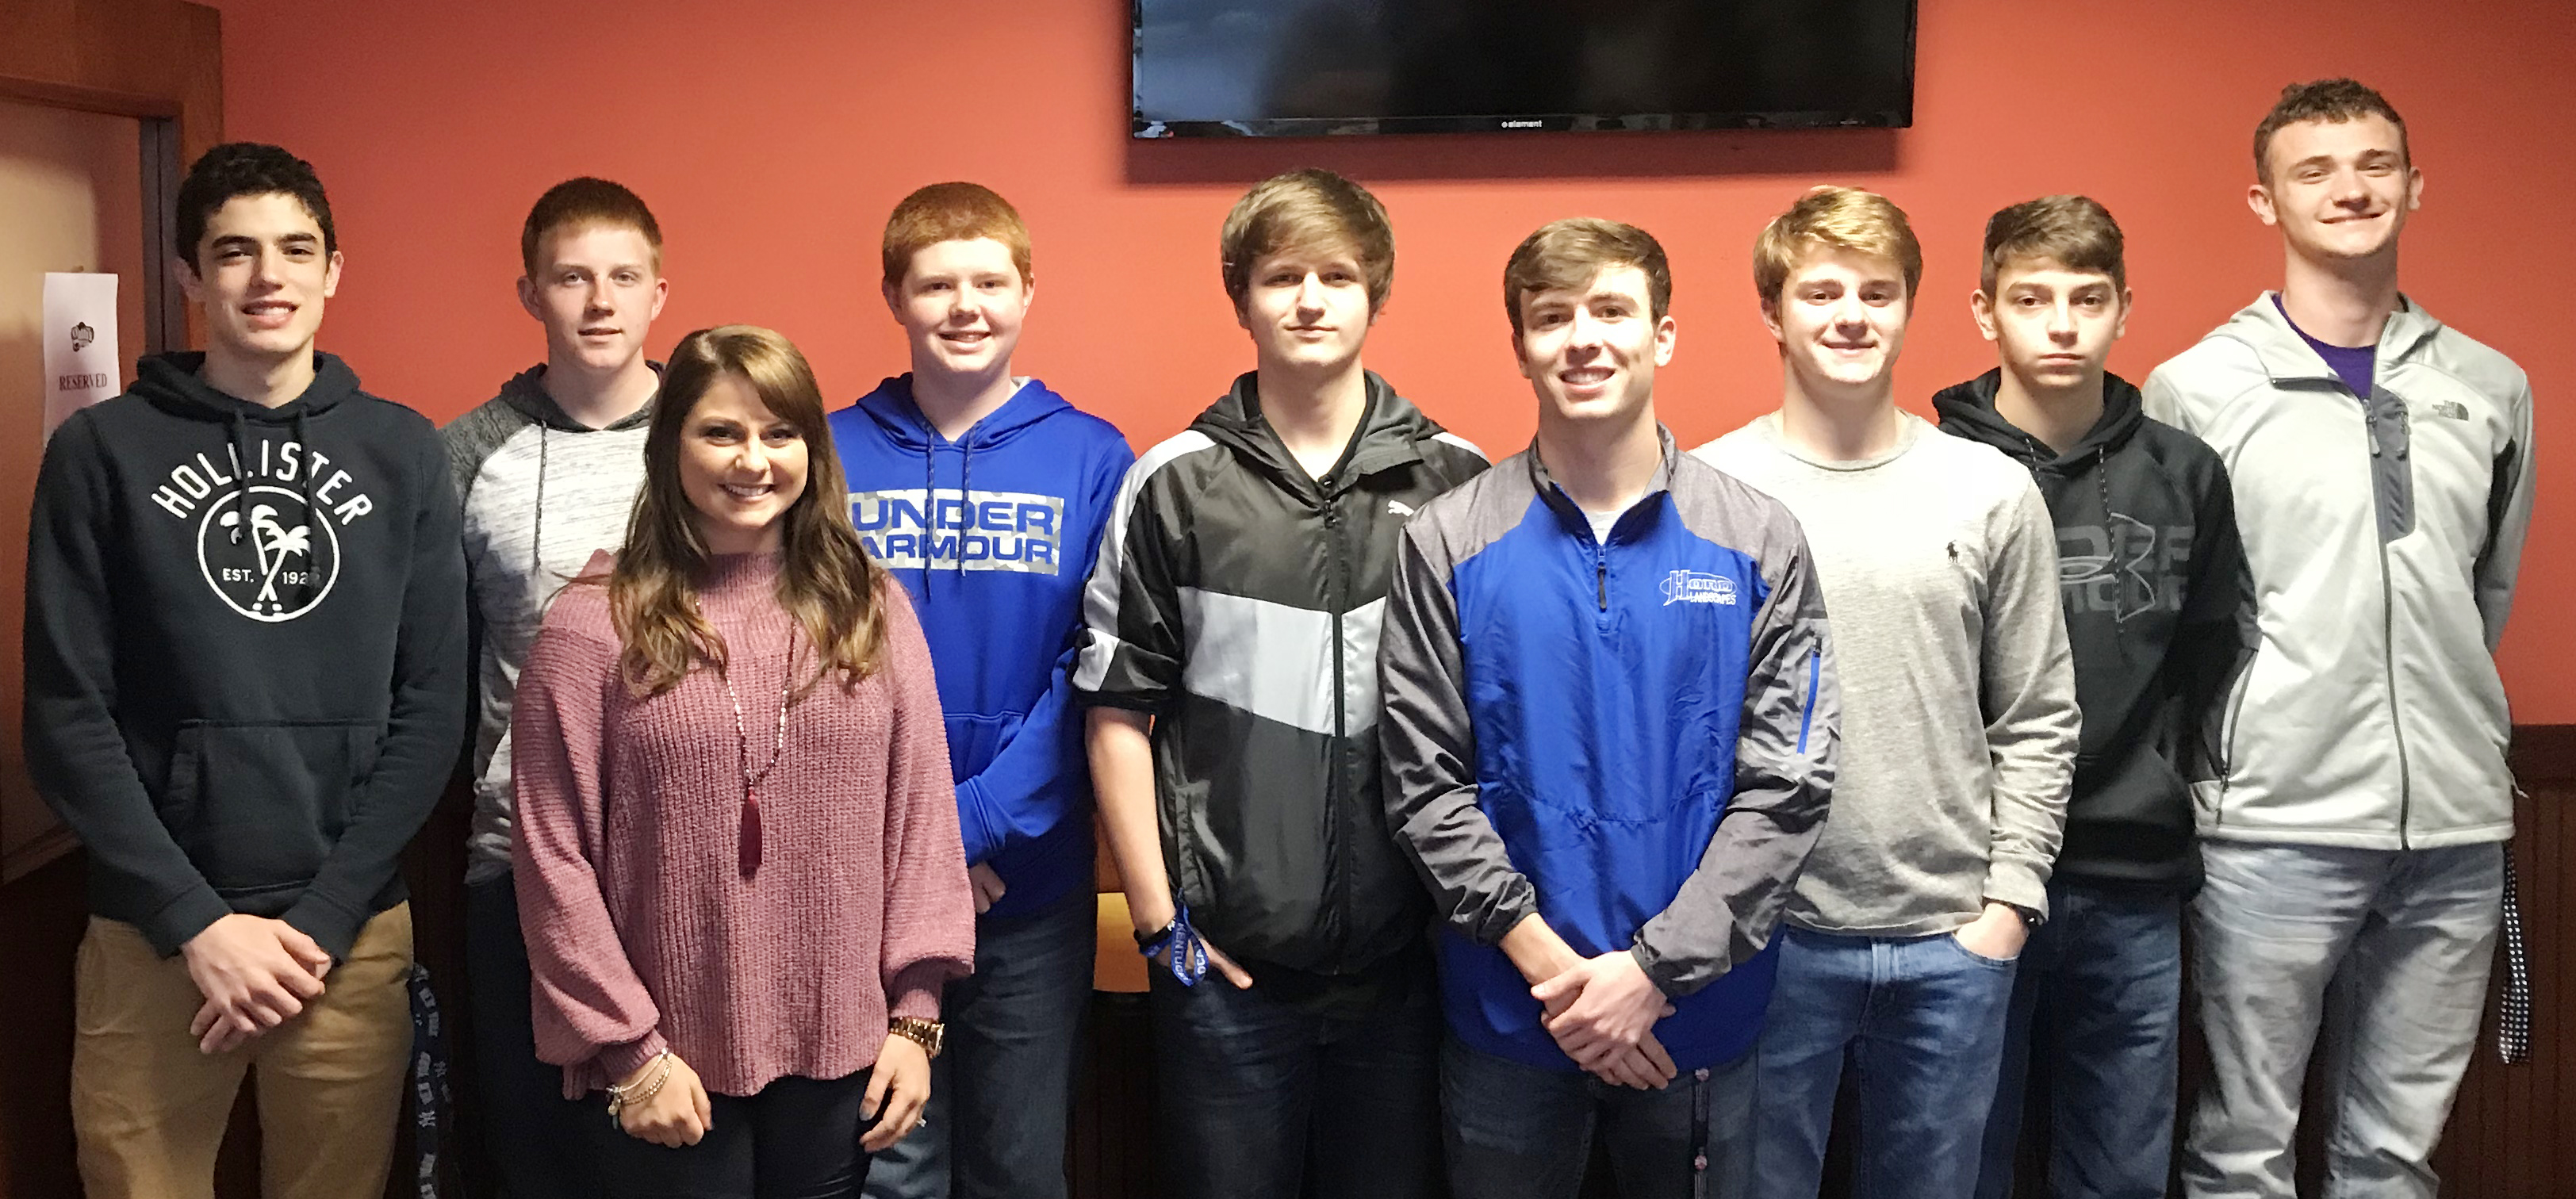 Campbellsville High School boys' golf players were recently honored for their hard work and success this season. From left are freshman Kameron Smith, sophomore Patrick Walker, coach Cassidy Decker, freshman Colin Harris, juniors Myles Murrell and Layton Hord, senior Alex Doss, junior Casey Hardin and senior Connor Wilson.